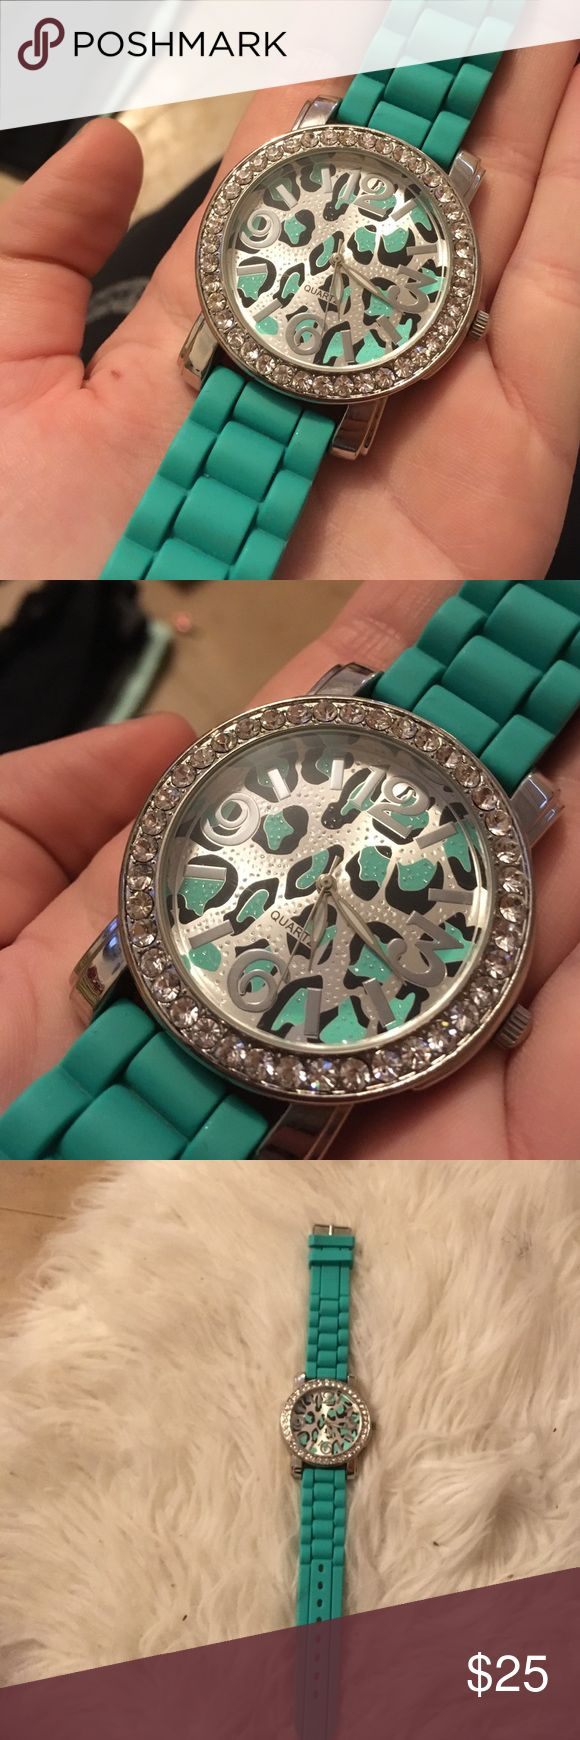 Leopard print teal watch Leopard print teal mint watch. Silver bling. Only worn once but needs new battery. Stainless steal Accessories Watches